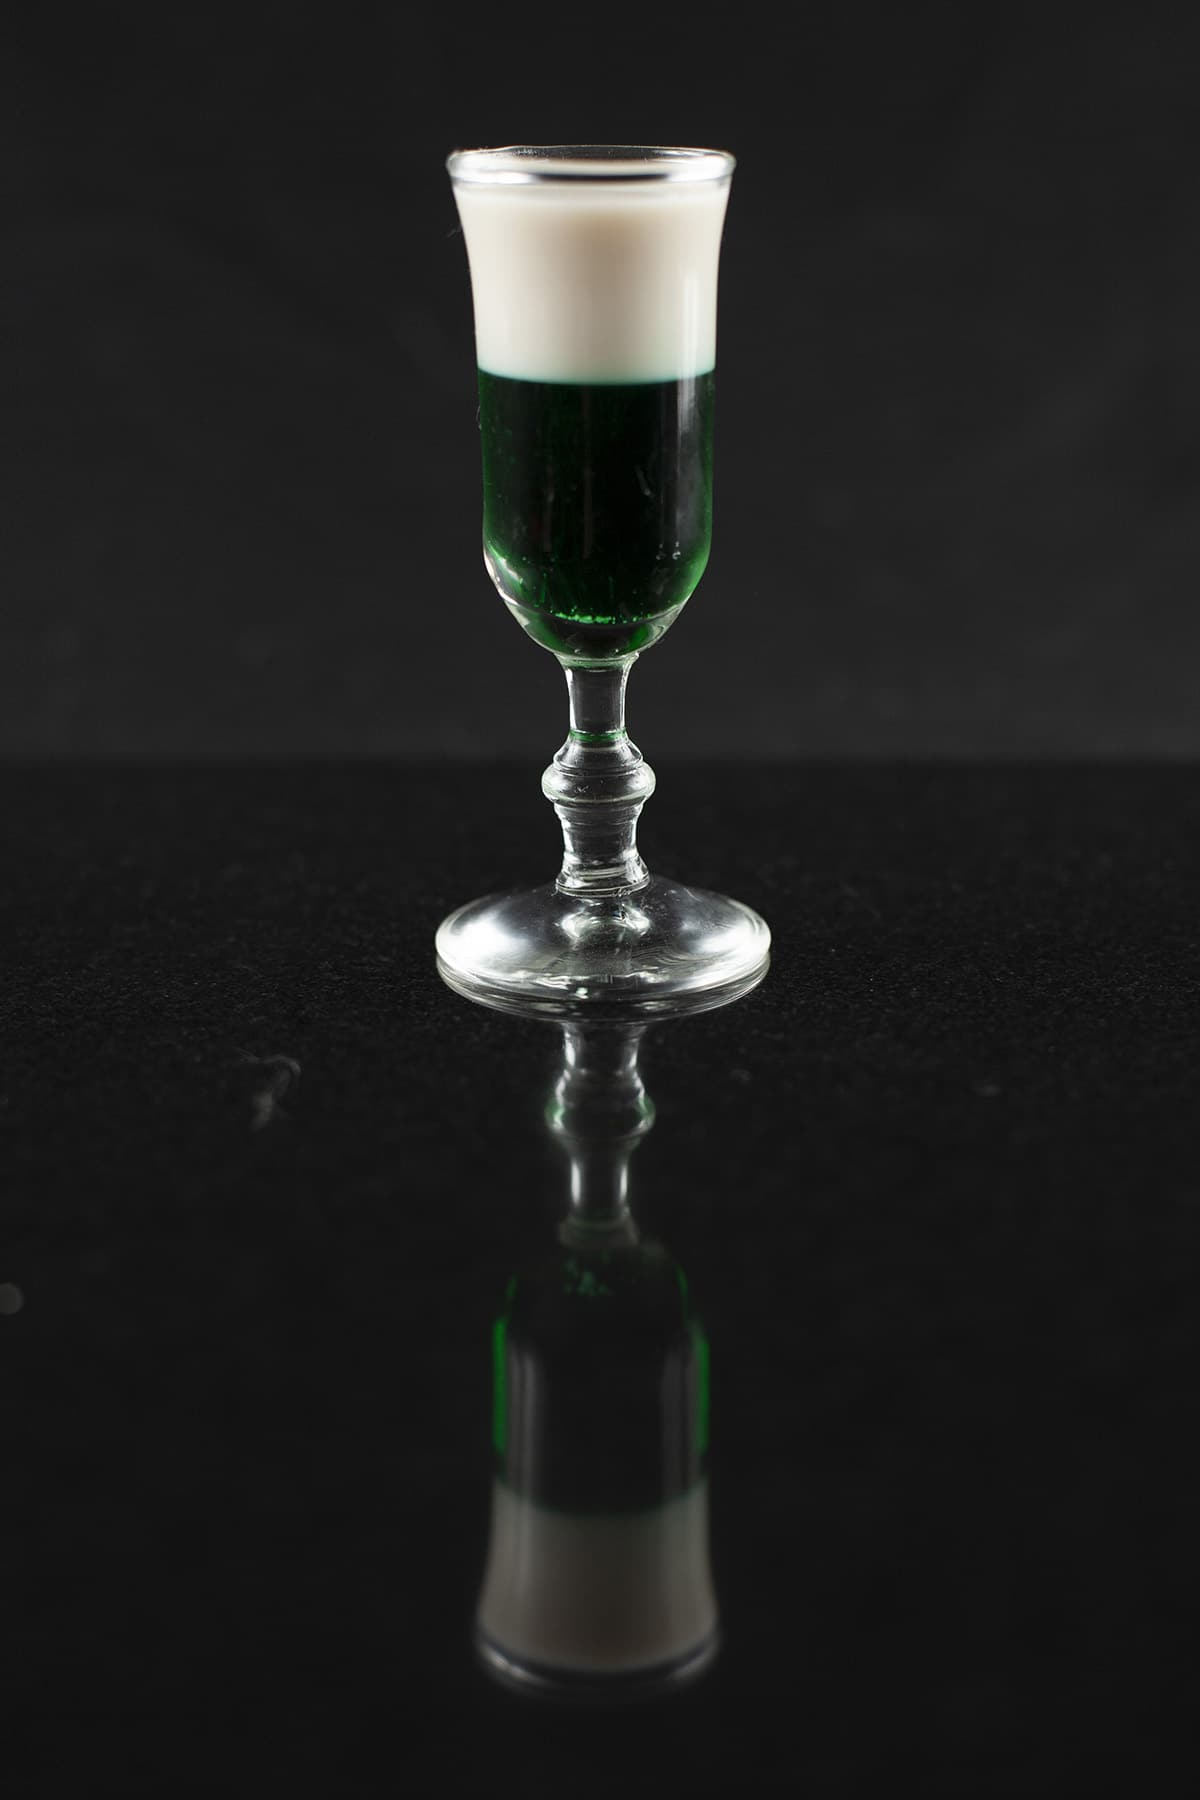 A green and black layered shot cocktail in a stemmed glass.